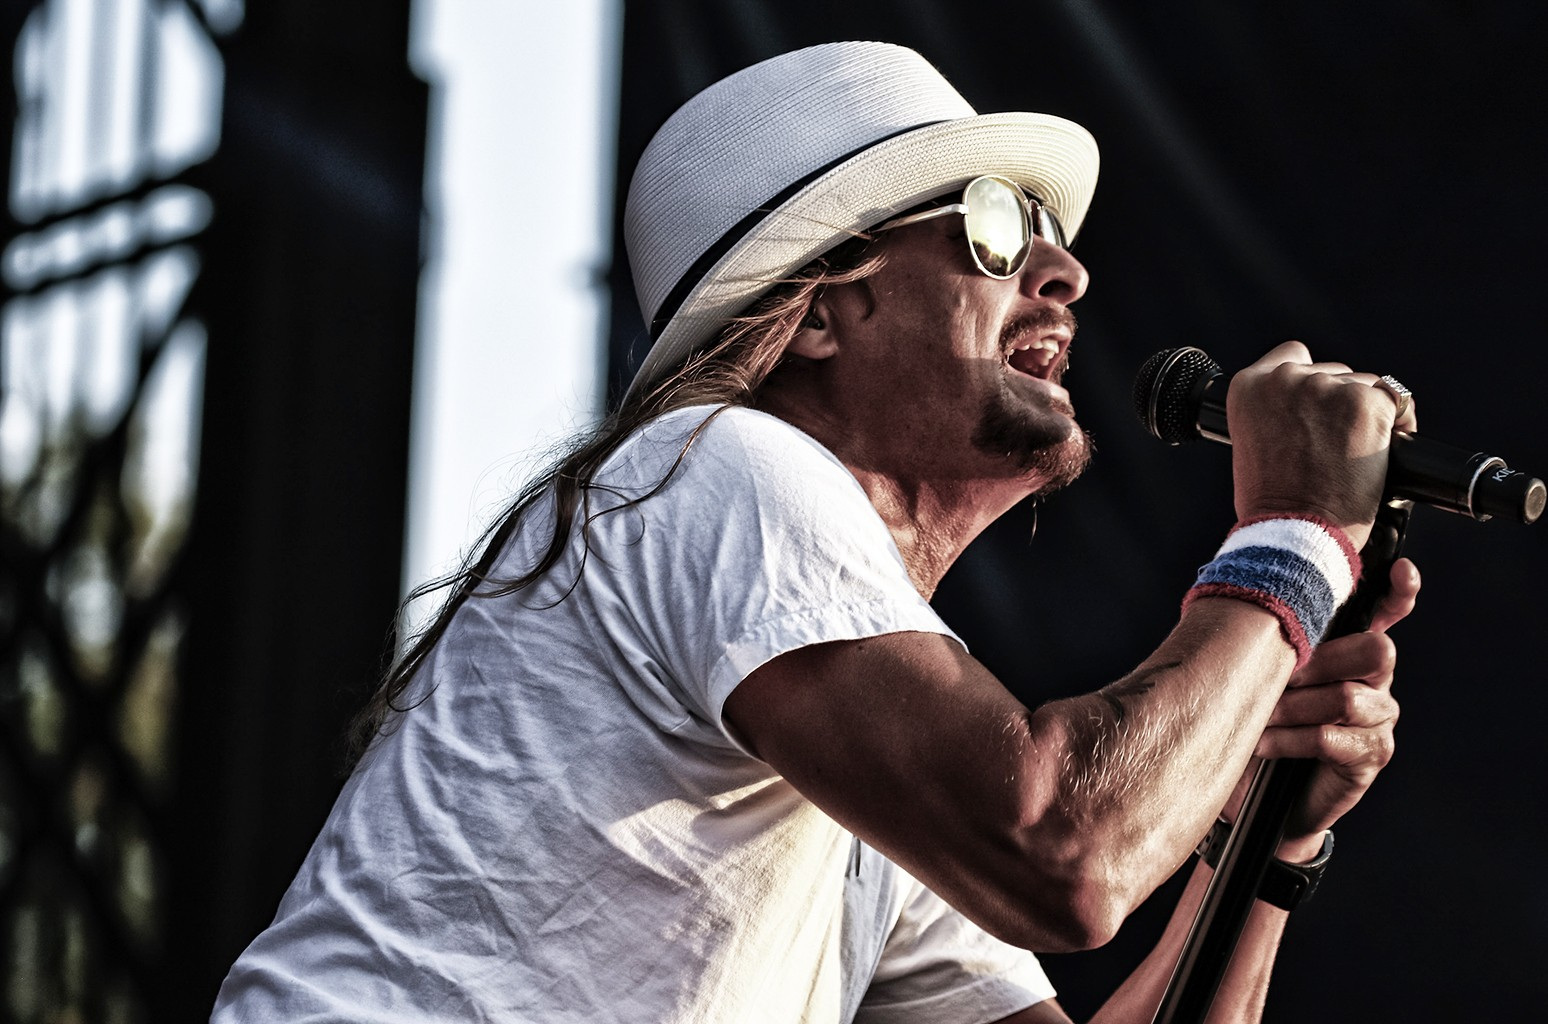 Kid Rock performs at the Indianapolis Motor Speedway